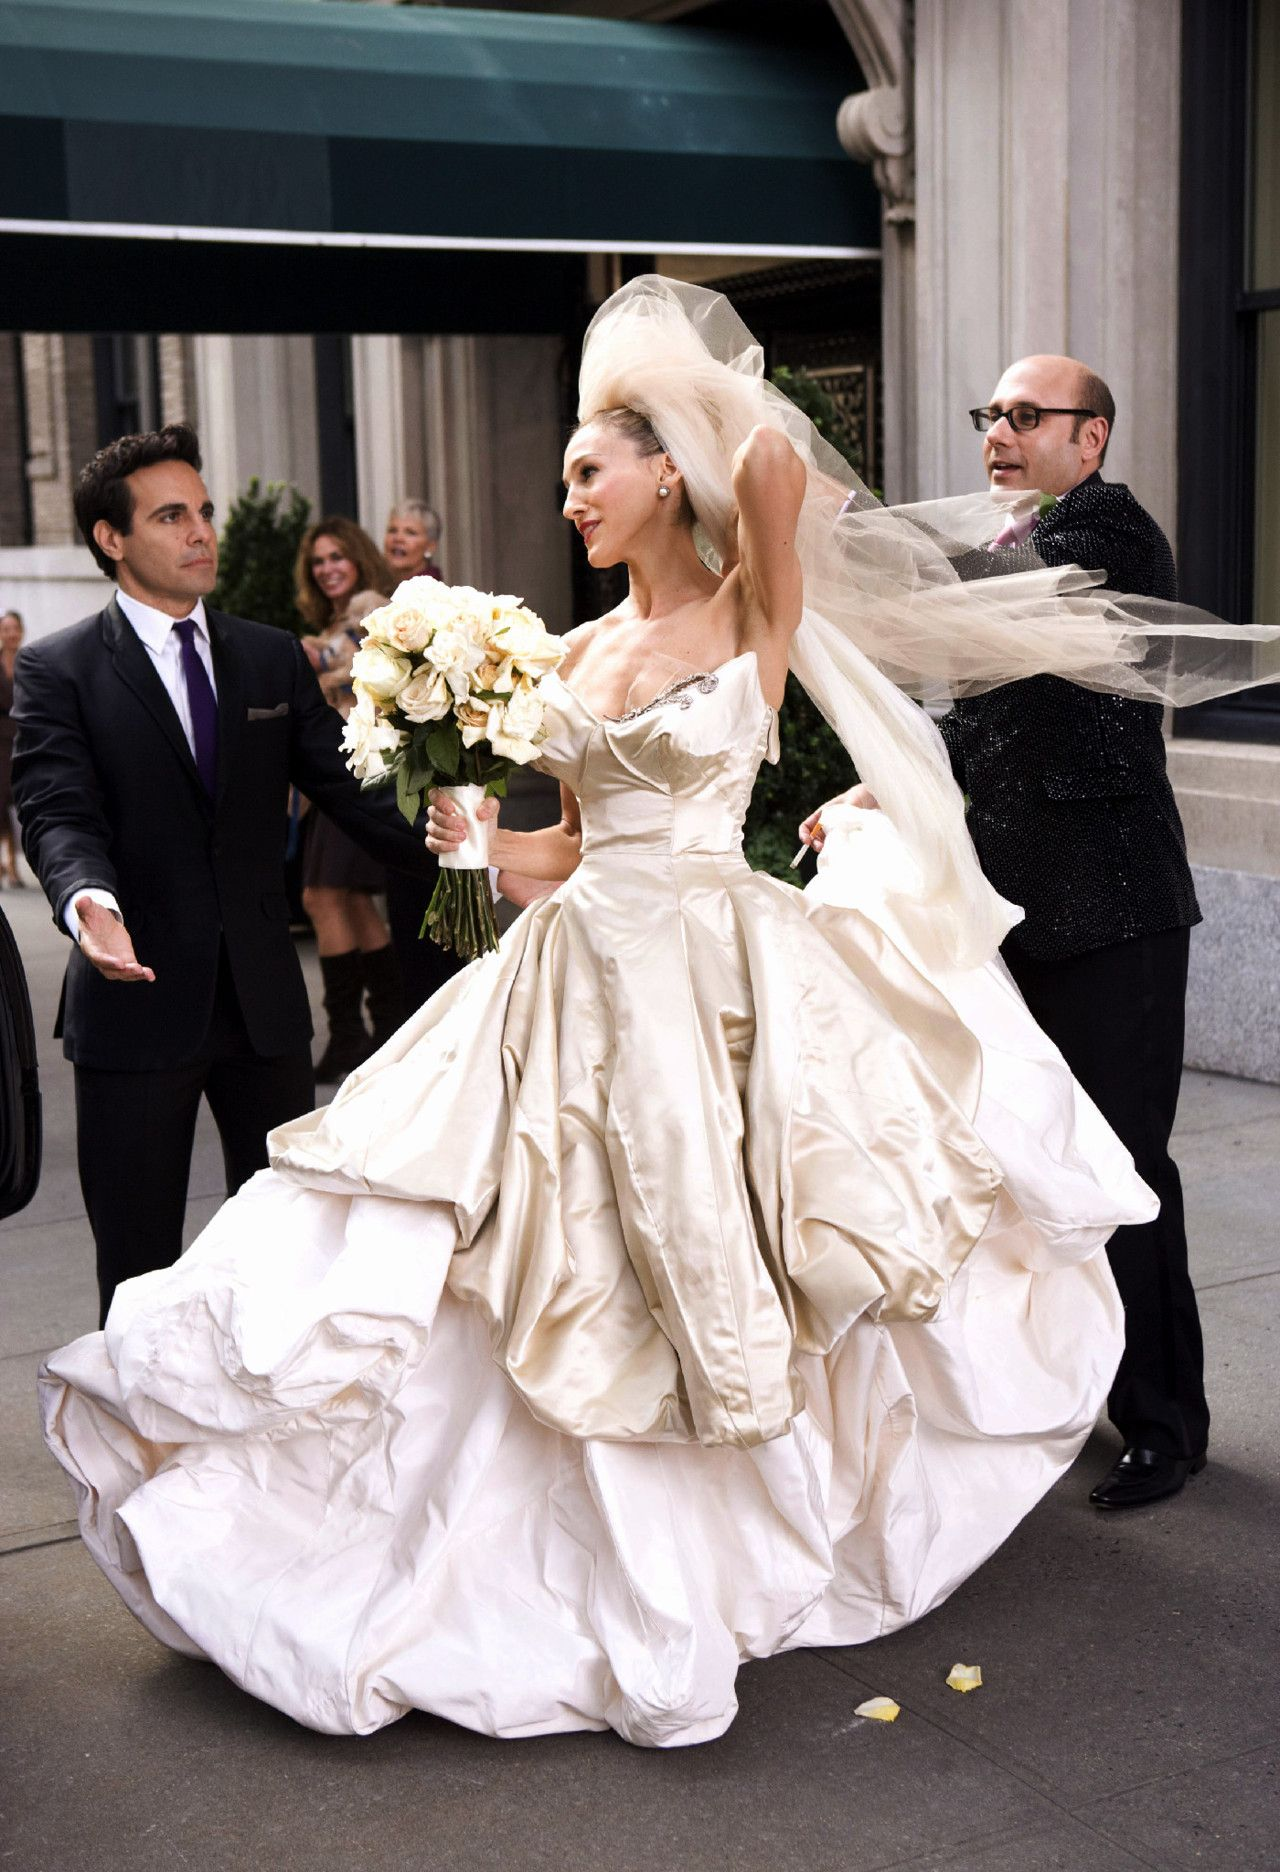 Pin by Kristine Keith on Entertain Me  Carrie bradshaw wedding